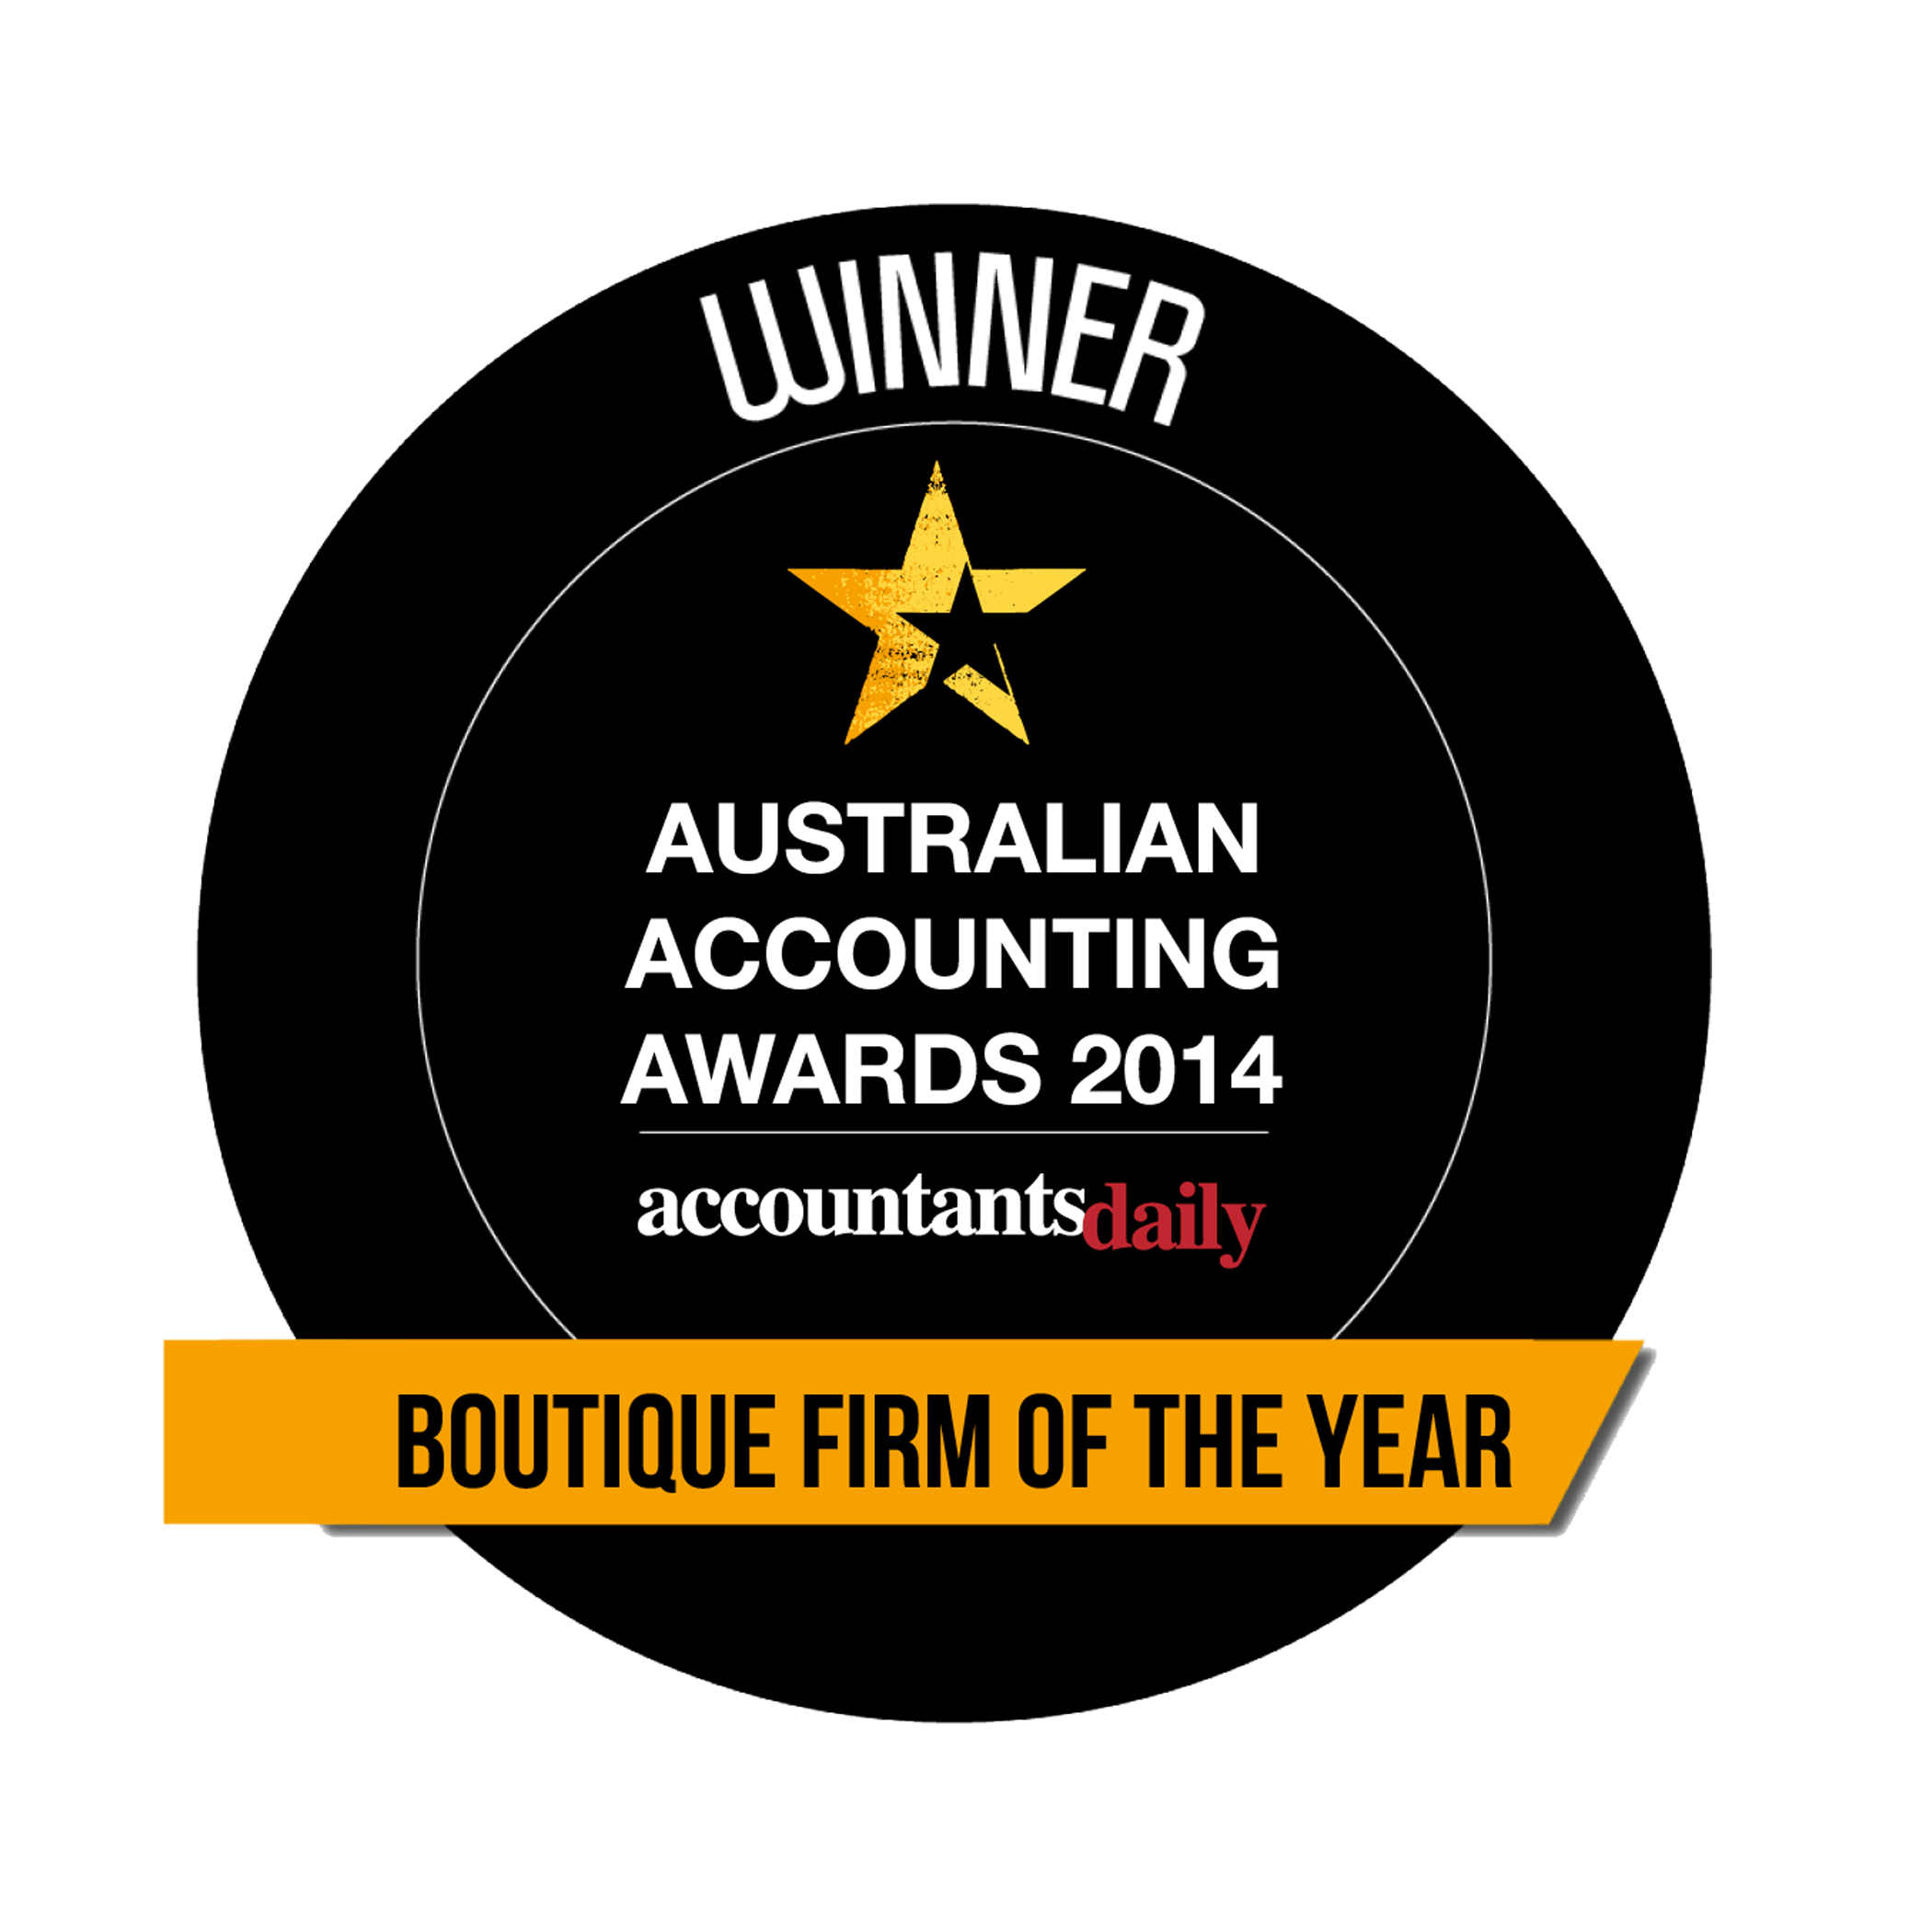 Aust Accounting Awards BOUTIQUE FIRM OF THE YEAR 2014